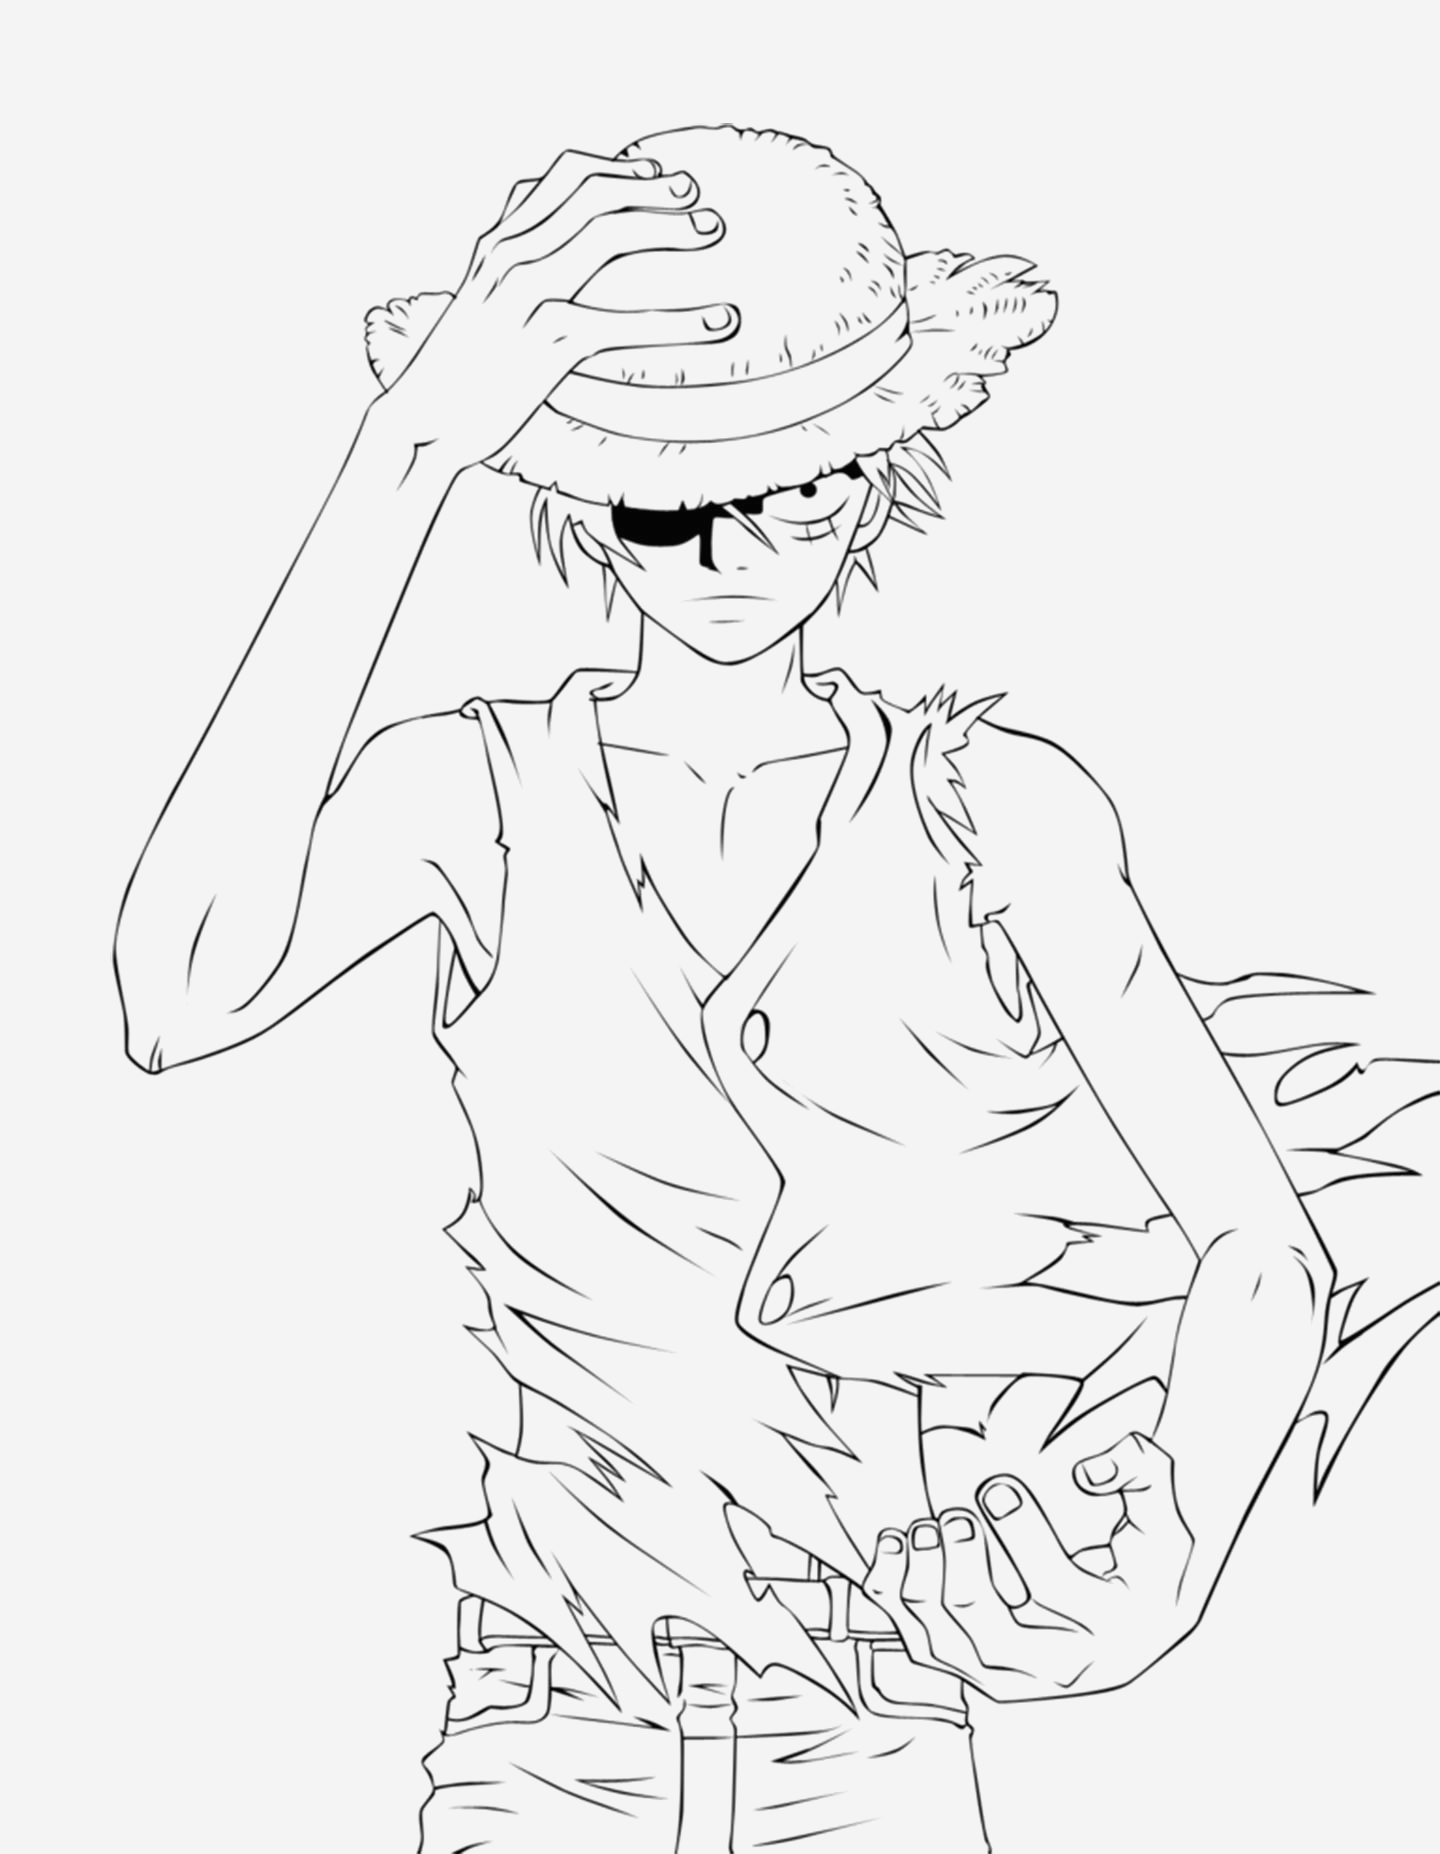 Coloriage One Piece Luffy Beautiful E Piece to Color for Kids E Piece Kids Coloring Pages Of Coloriage One Piece Luffy